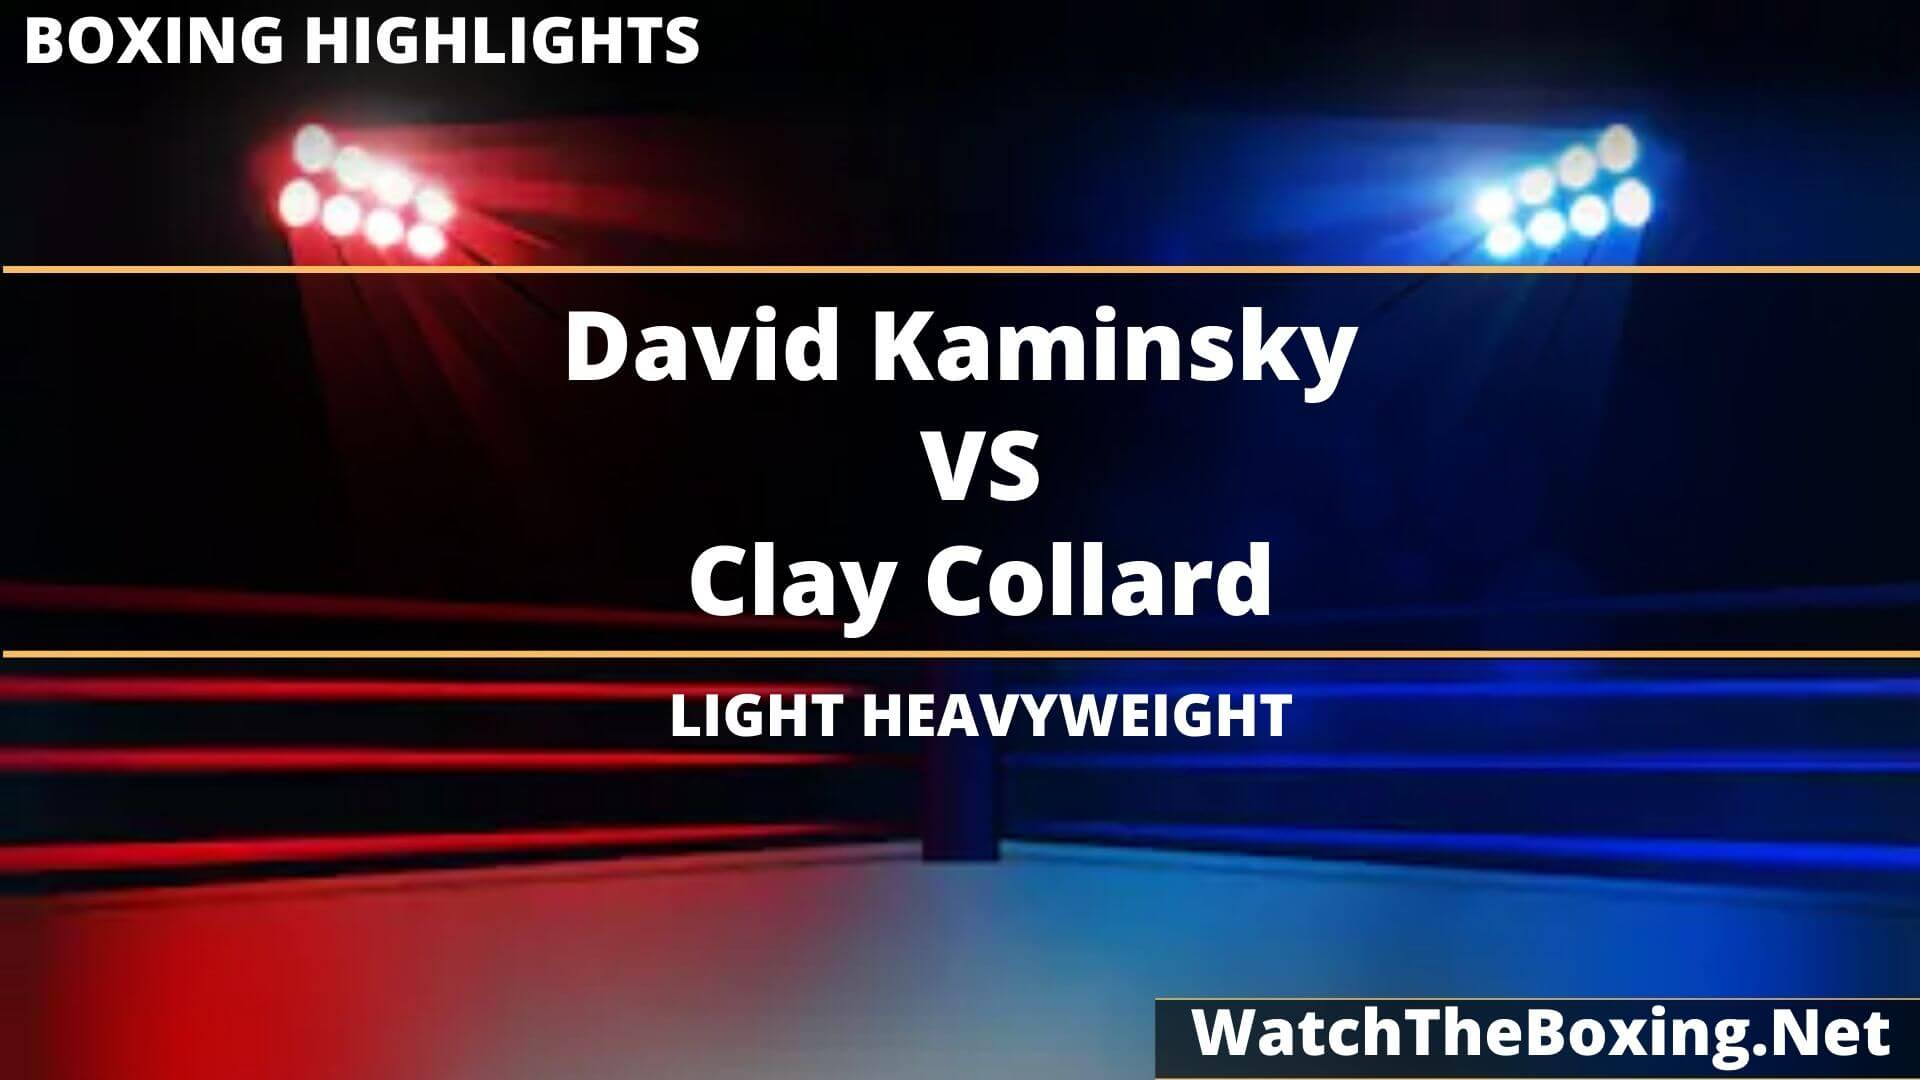 David Kaminsky Vs Clay Collard Highlights 2020 Light Heavyweight